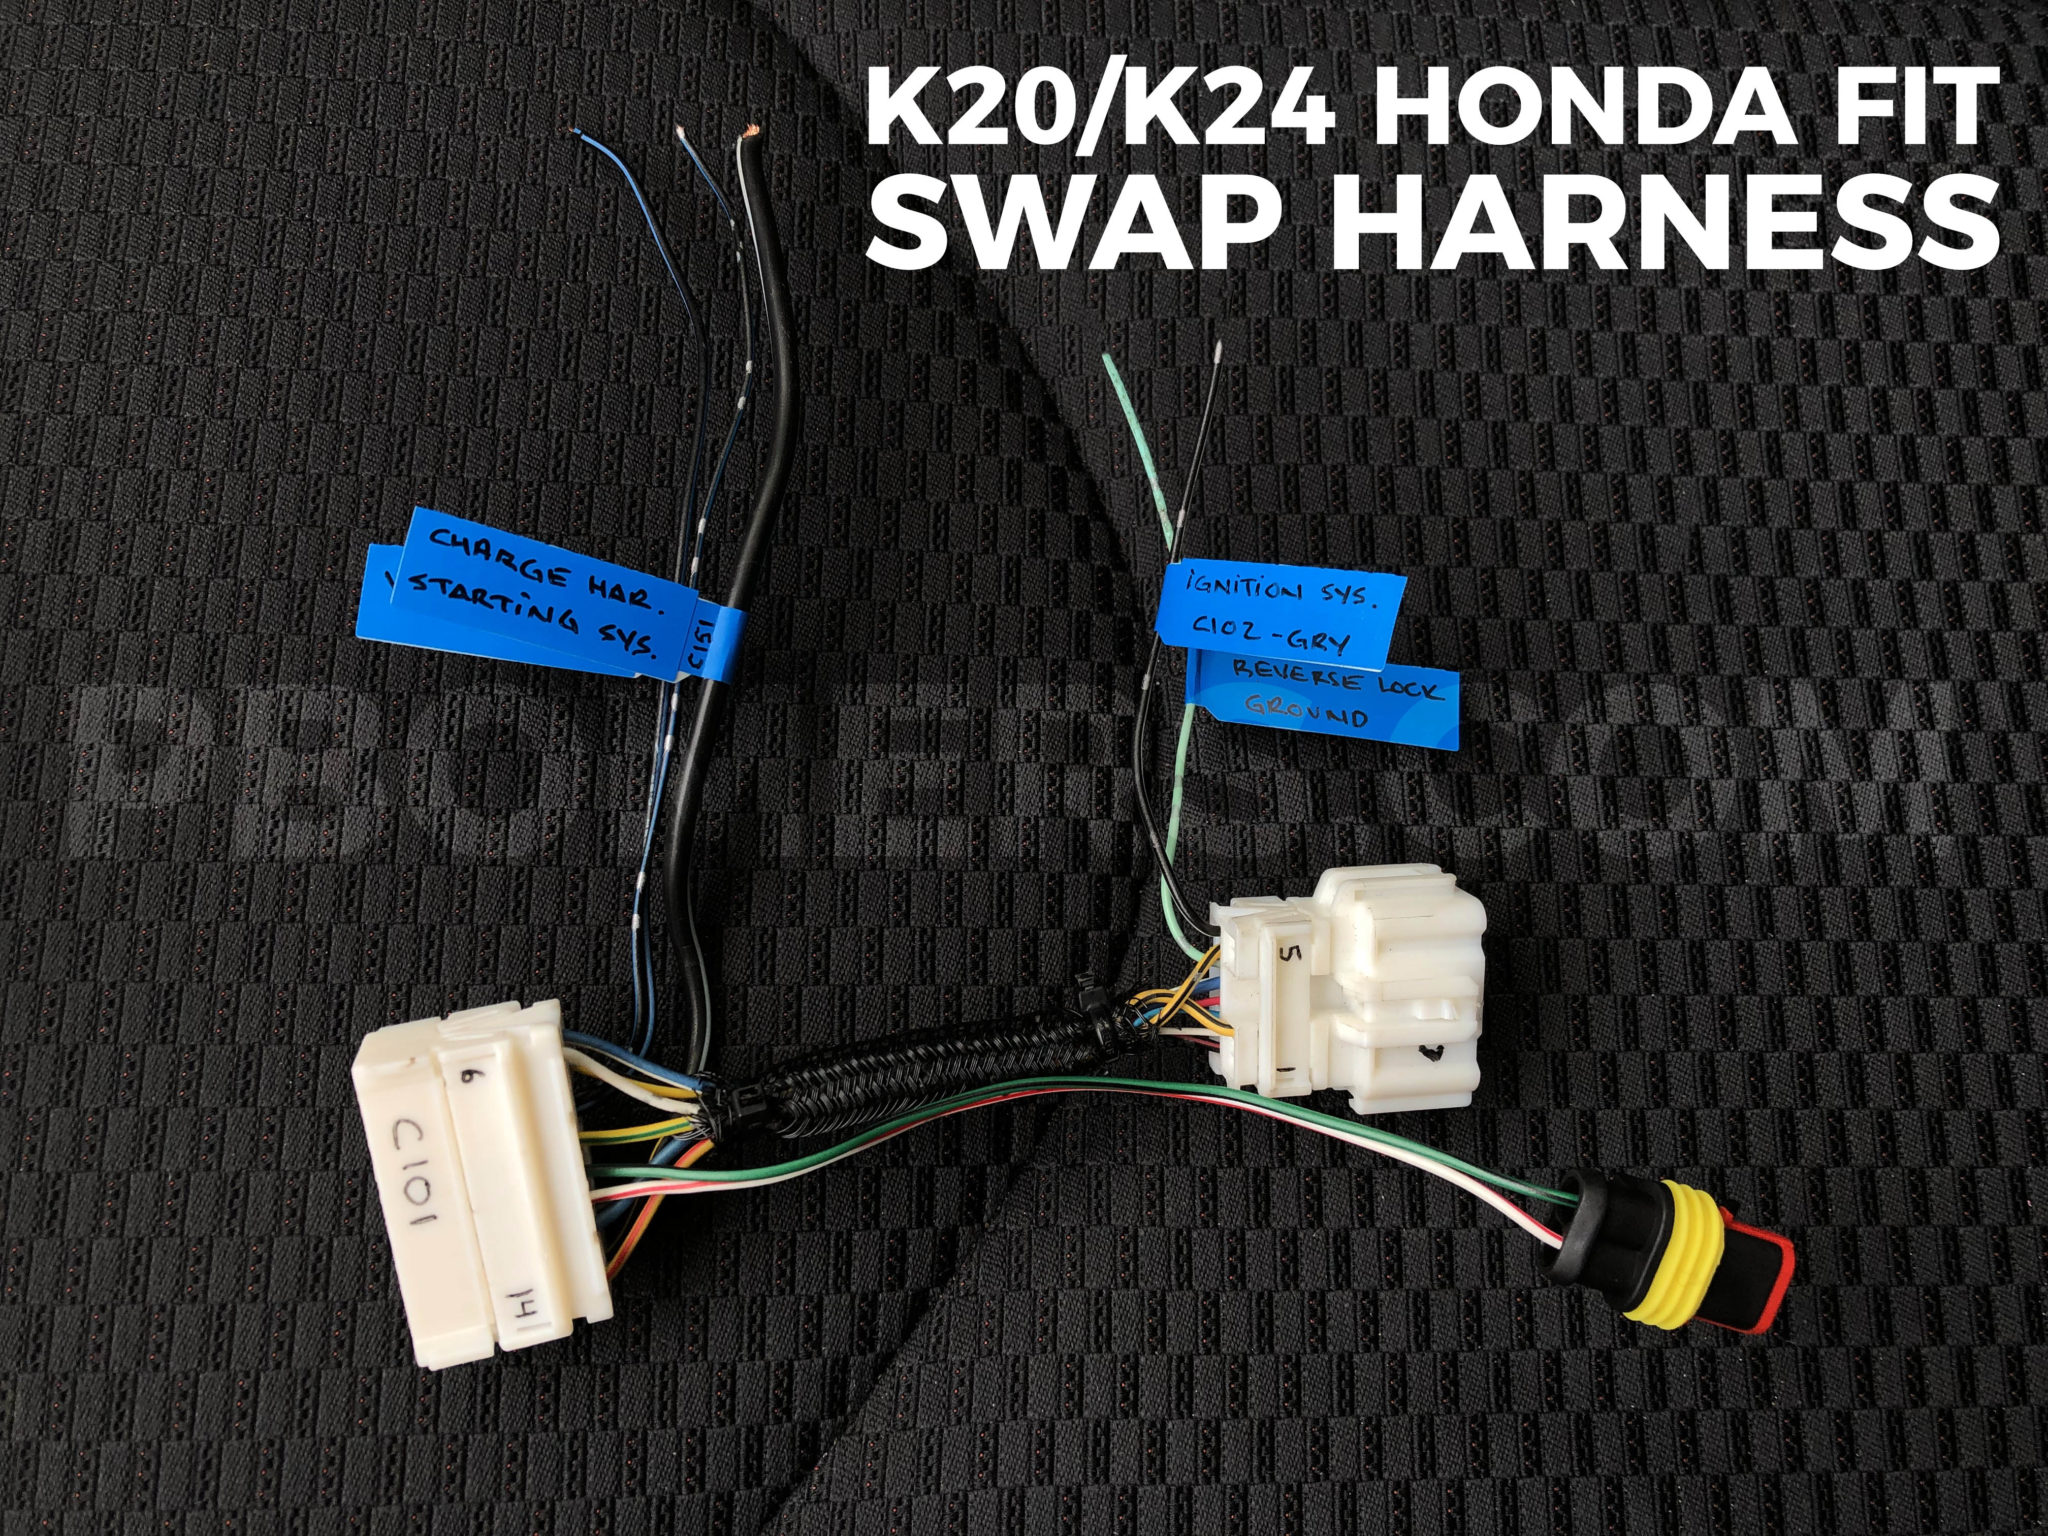 K20 K24 Honda Fit Dash Wiring Harness